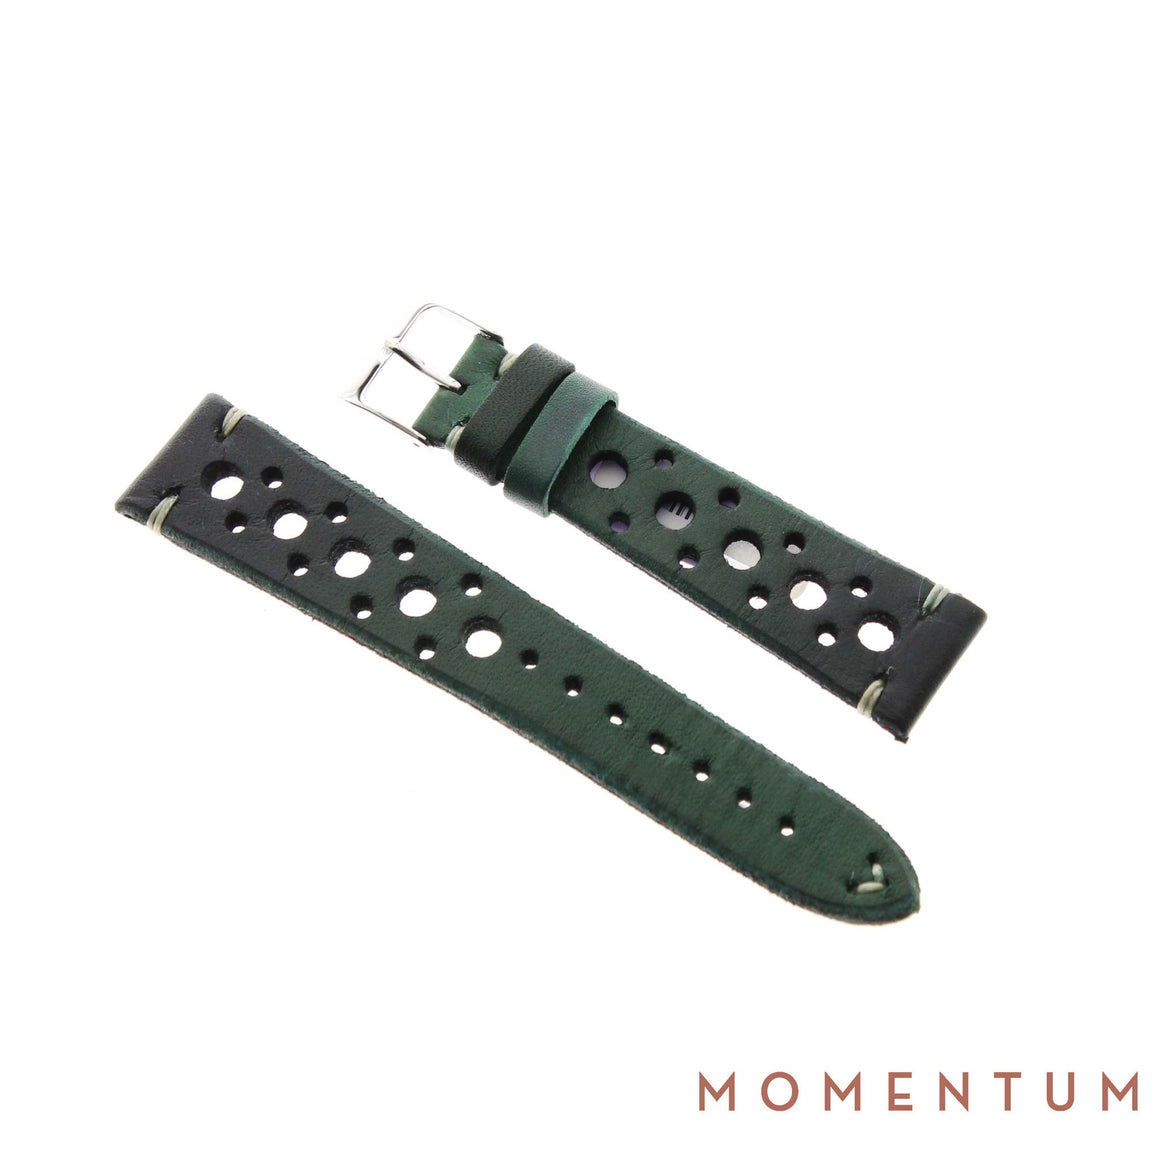 Vintage Strap - Dark Green Berluti style with holes - Calf Leather - Momentum Dubai